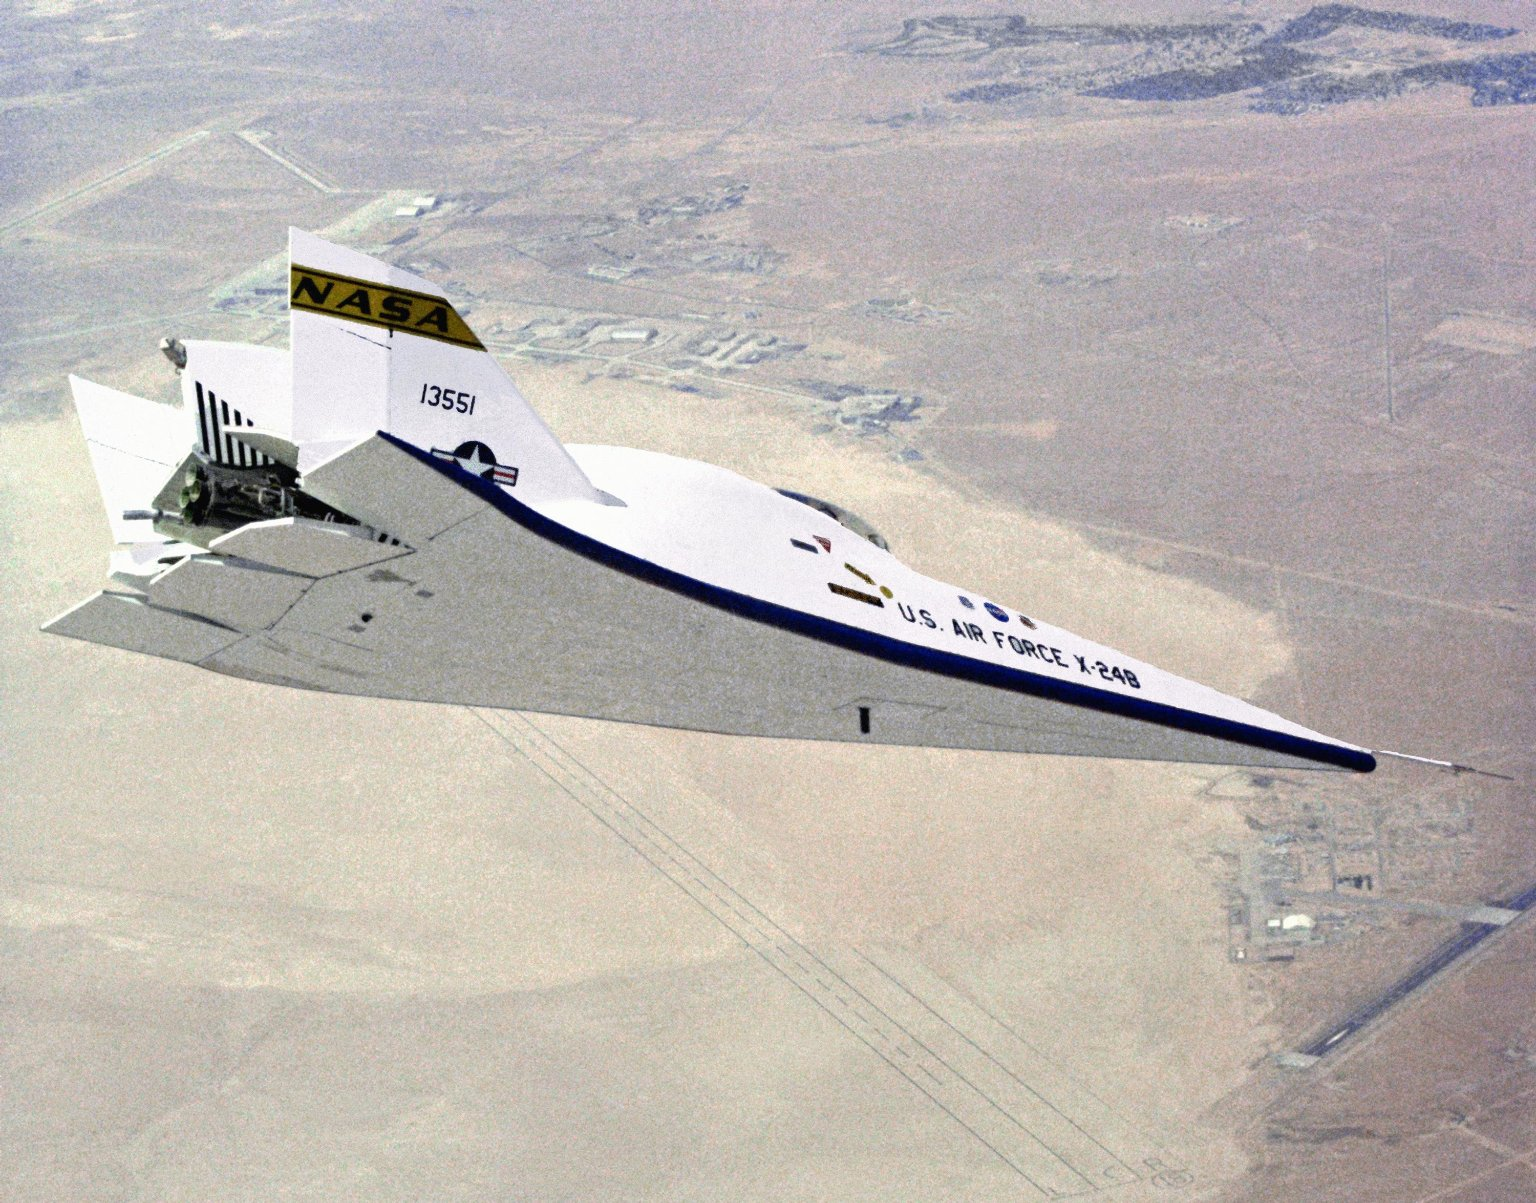 Lifting Body Aircraft